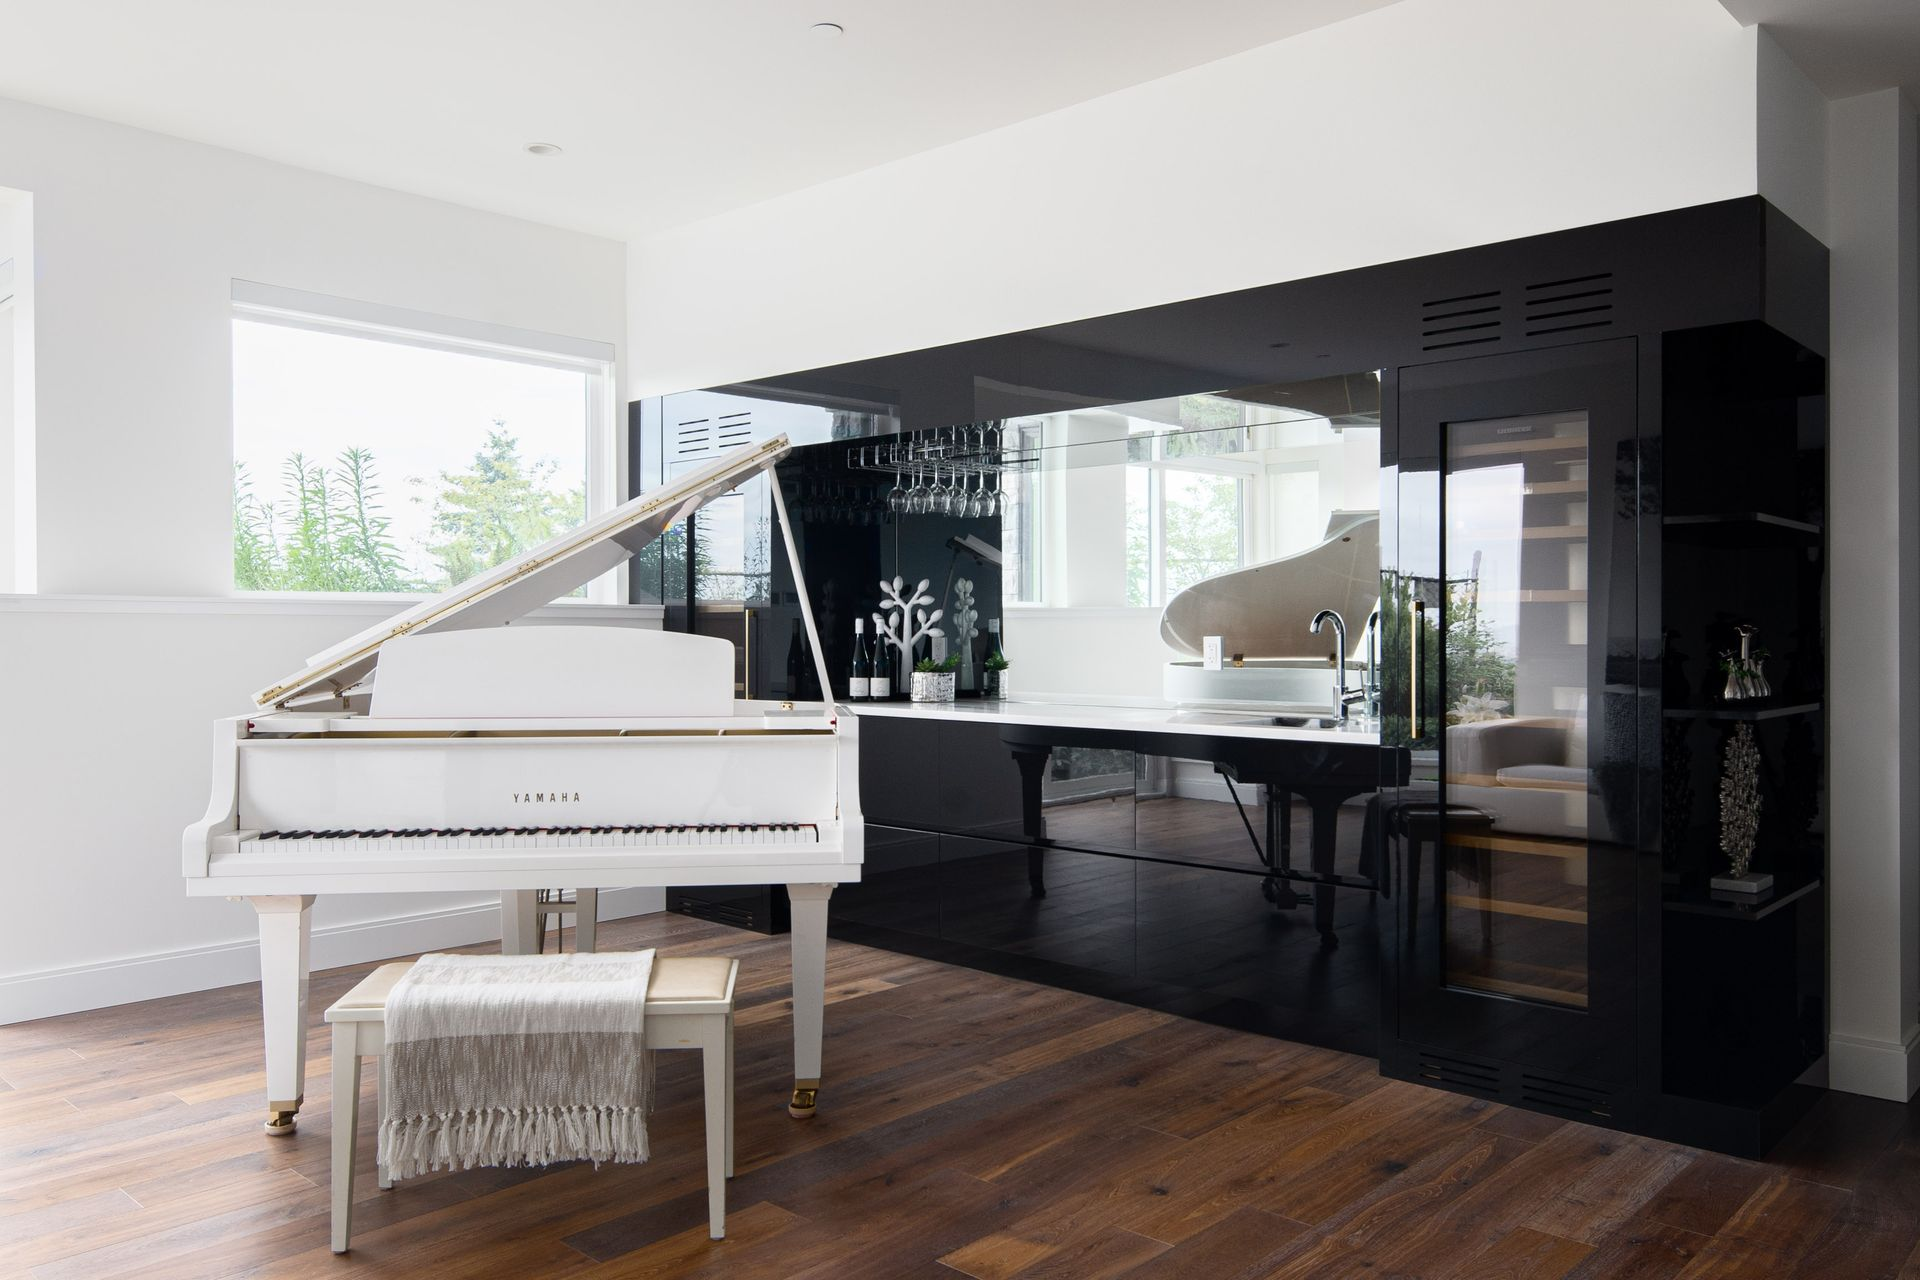 union-crt-2121-west-vancouver-tandy-gao-staging-27 at 2121 Union Court, Panorama Village, West Vancouver